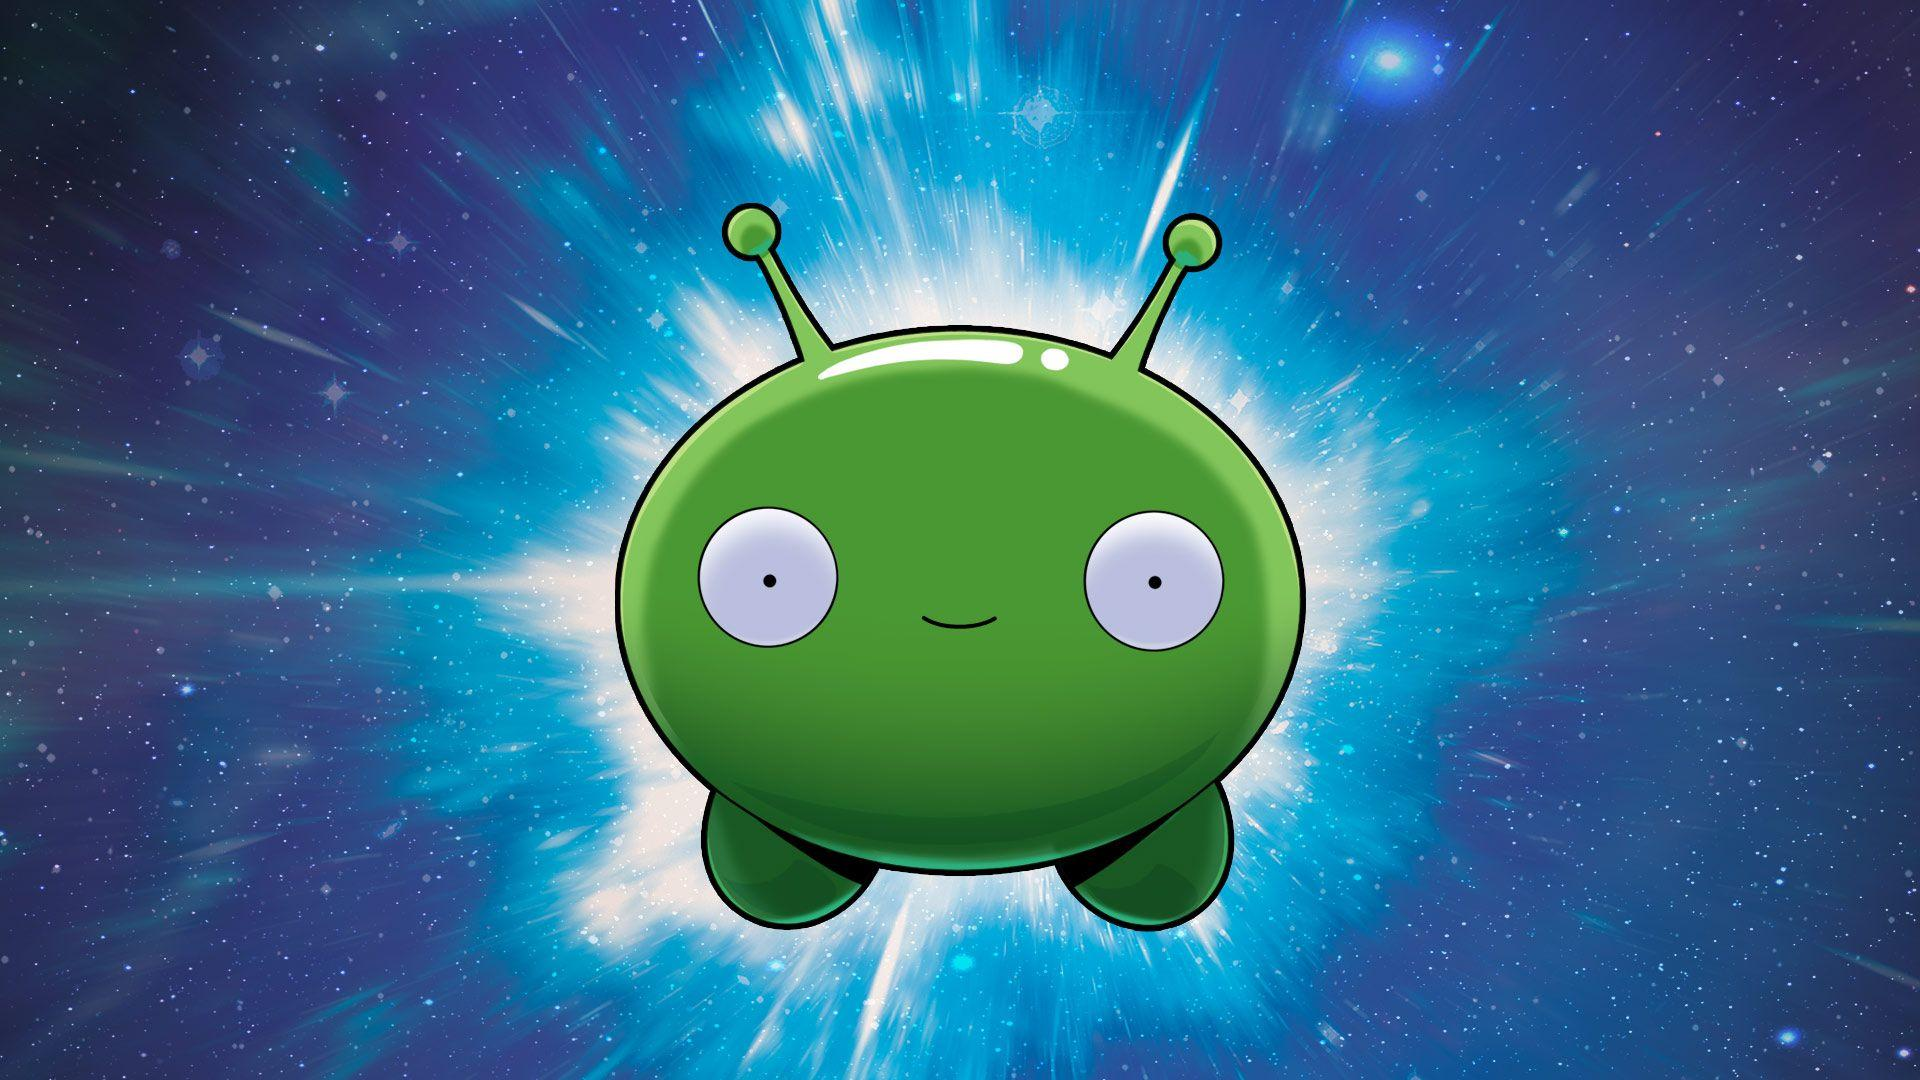 Final space wallpapers wallpaper cave - Final space wallpaper ...